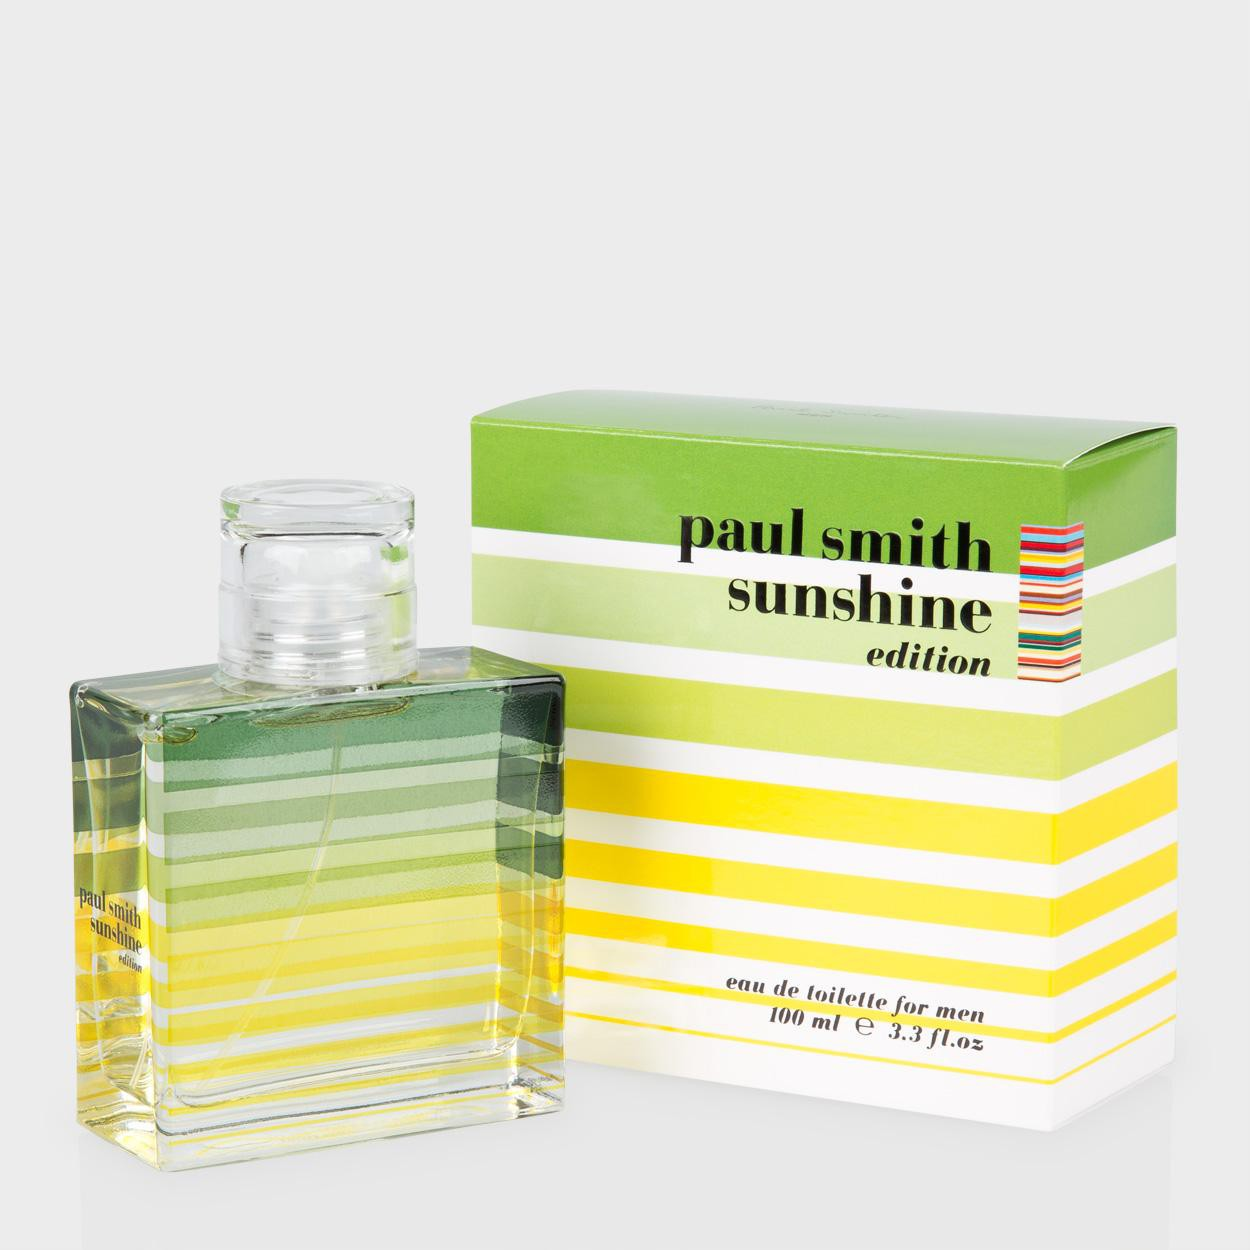 Paul Smith Sunshine Edition for Men 2013 аромат для мужчин